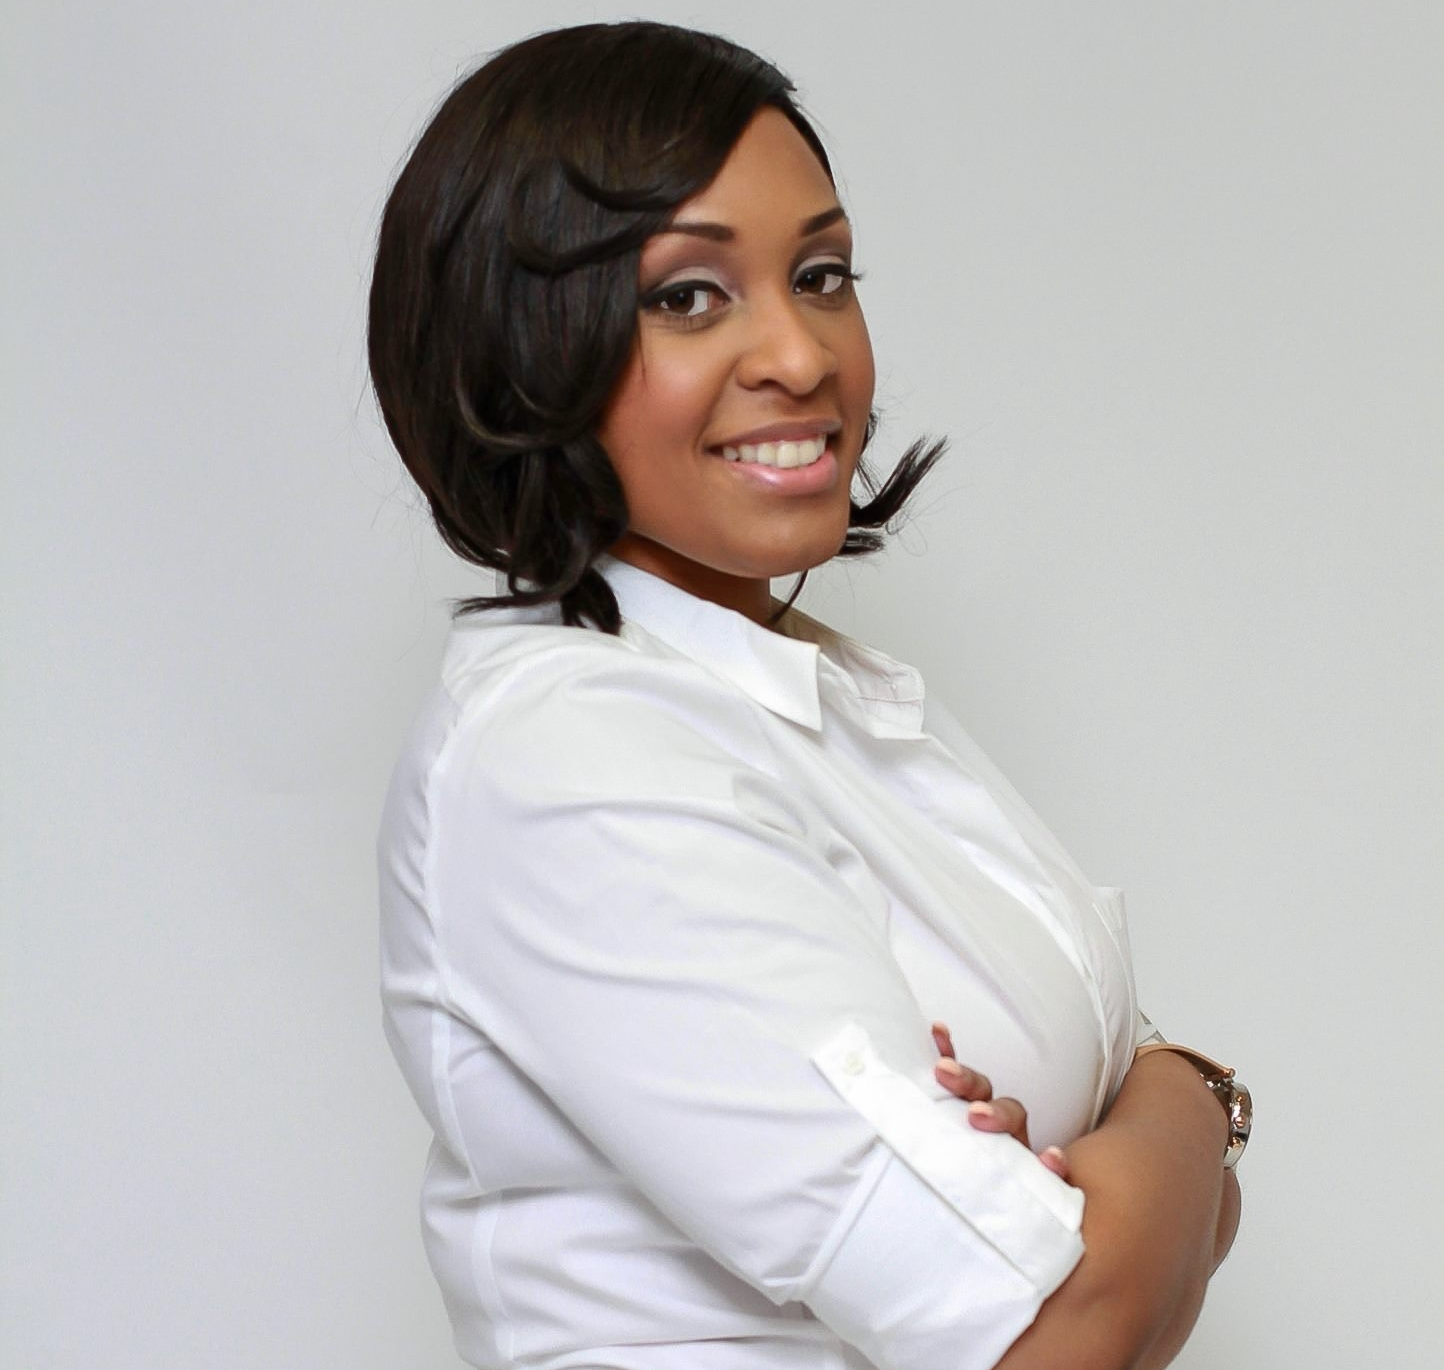 Monisha Edwards  Creative Business Owner, Truth Branding Agency  Monisha Edwards is a Creative Strategist, specializing in Branding, User Interface, and User Experience. She received her Bachelors of Science in Marketing from Fresno State University. Monisha started her first company while in college at the tender age of 19 to help her pay for tuition. She is now the Founder of Truth Branding Agency. She is also the Founder of Literacy Fresno, a literacy and literature exchange initiative. Monisha is an active servant of the community, especially Downtown Fresno, and is currently enrolled in Leadership Fresno.  How Design & Technology Gave Me A Chance